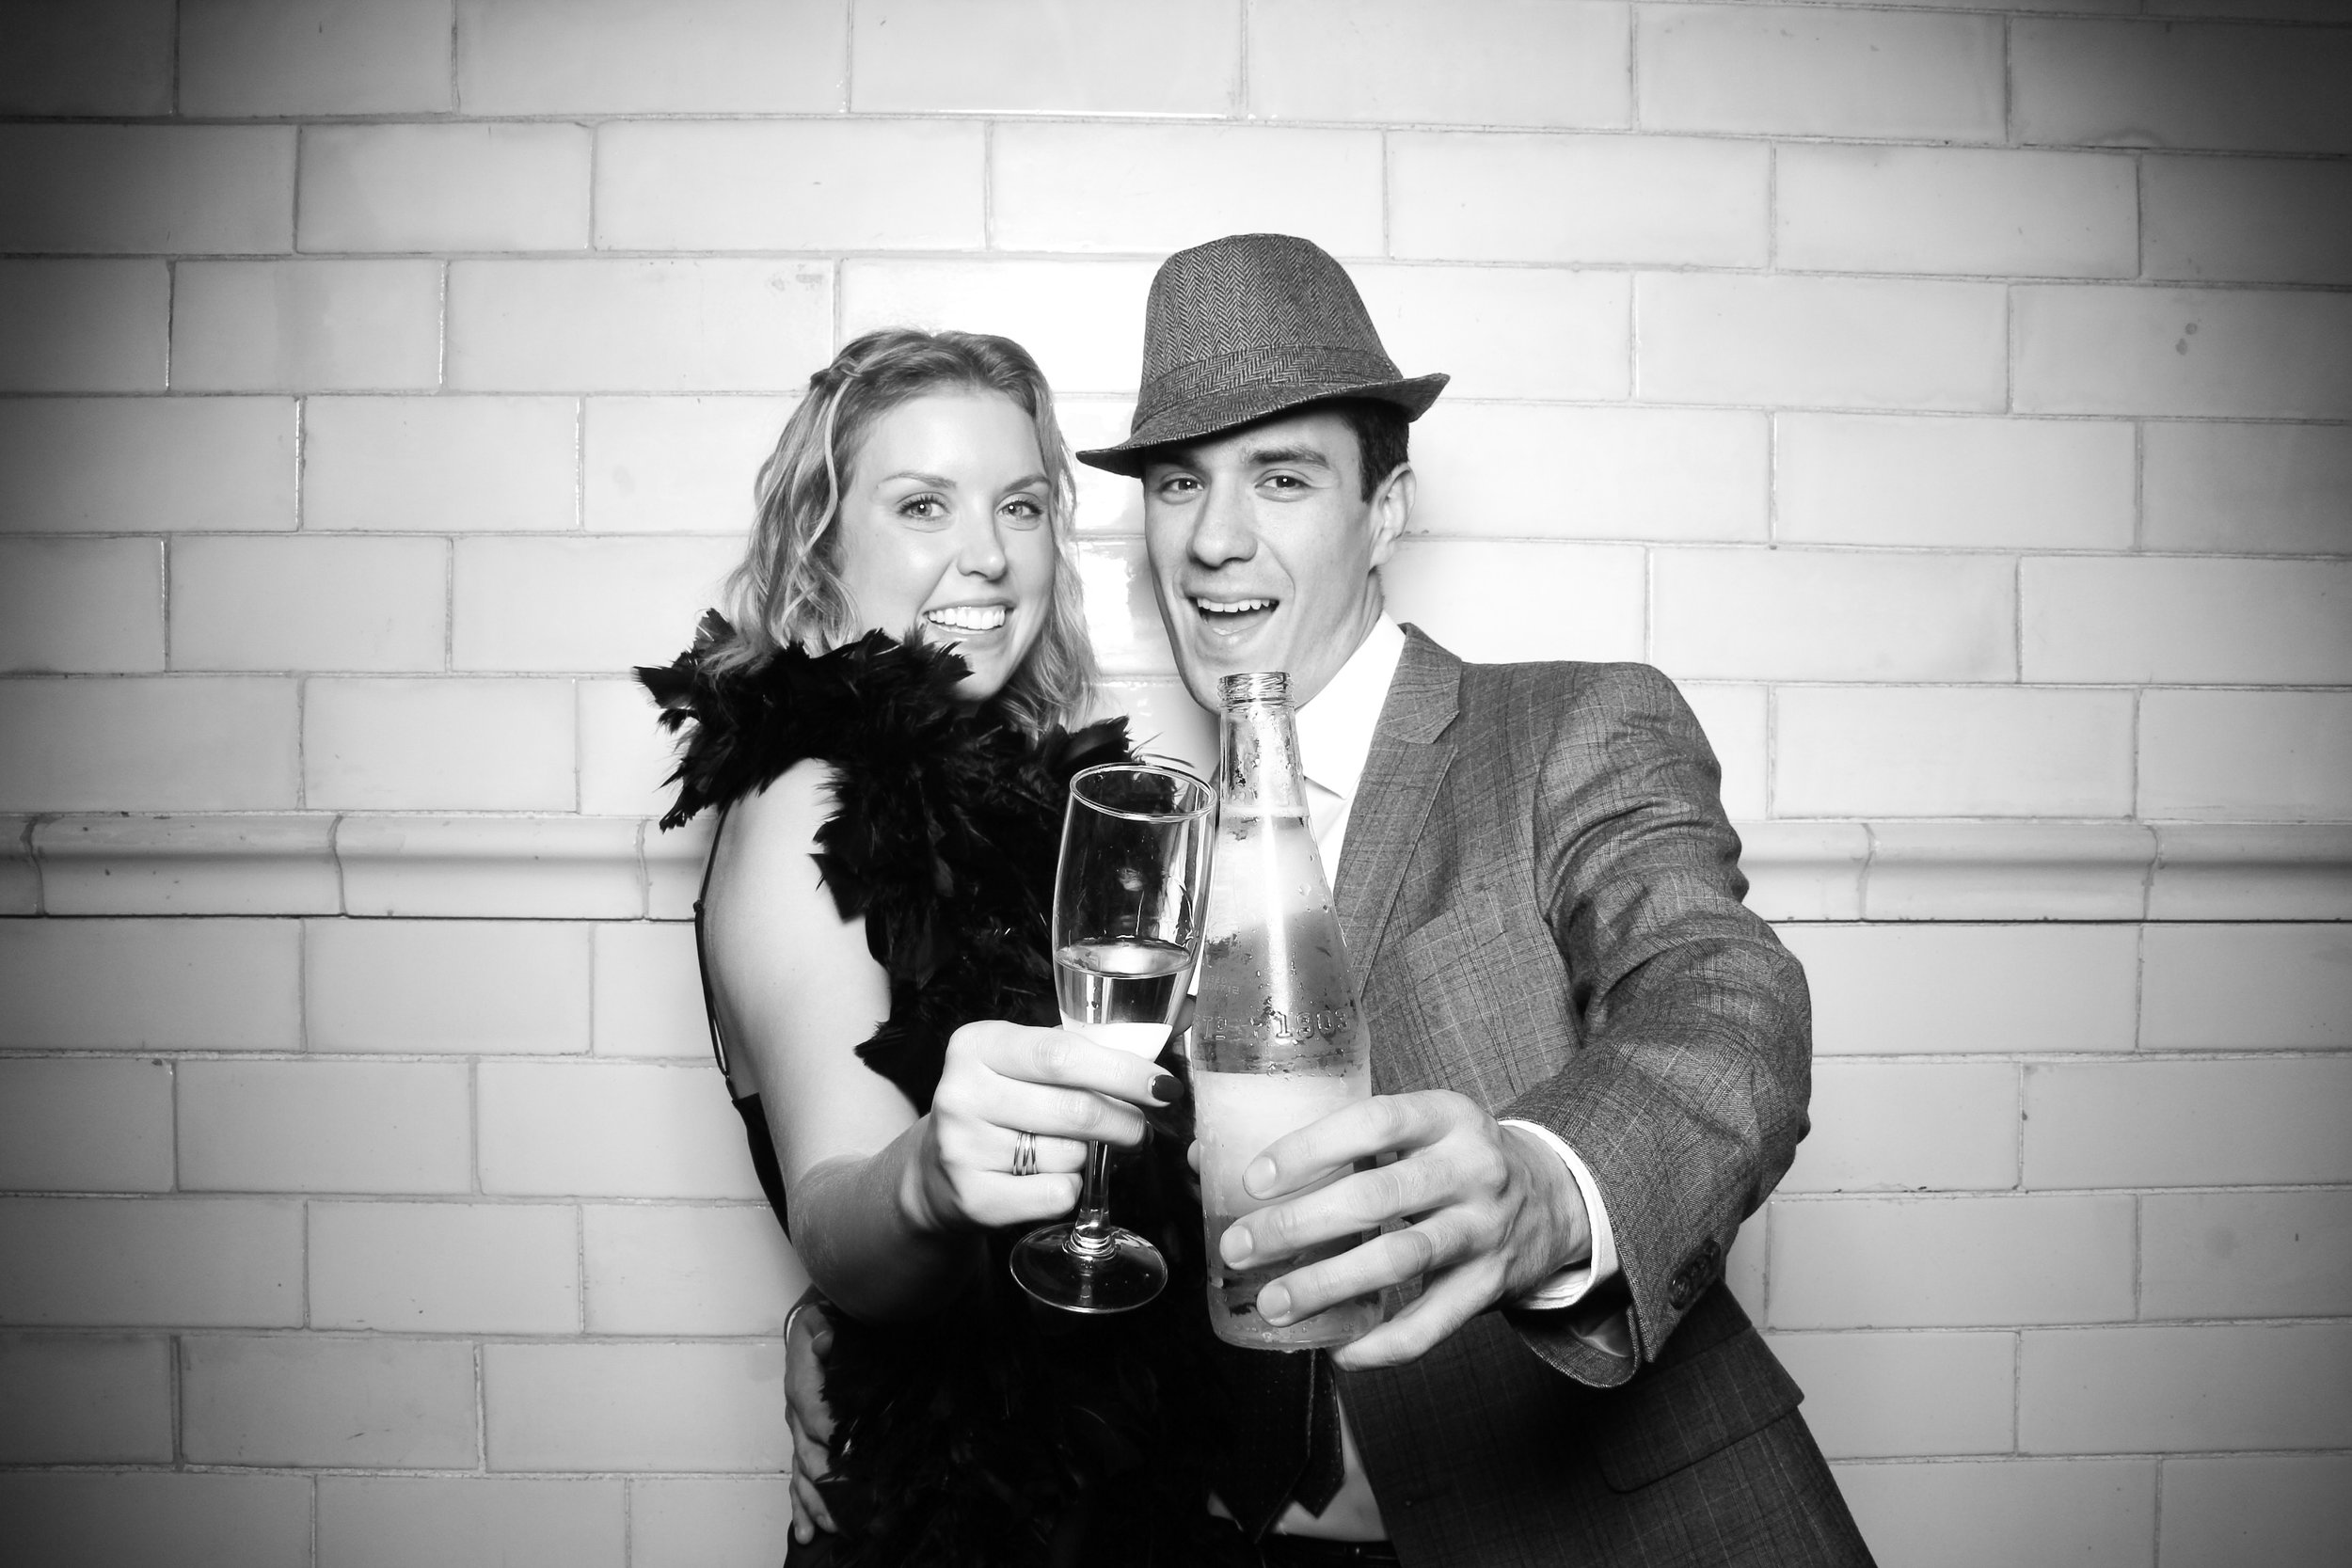 Firehouse_Chicago_Edgewater_Wedding_Reception_Photo_Booth_10.jpg